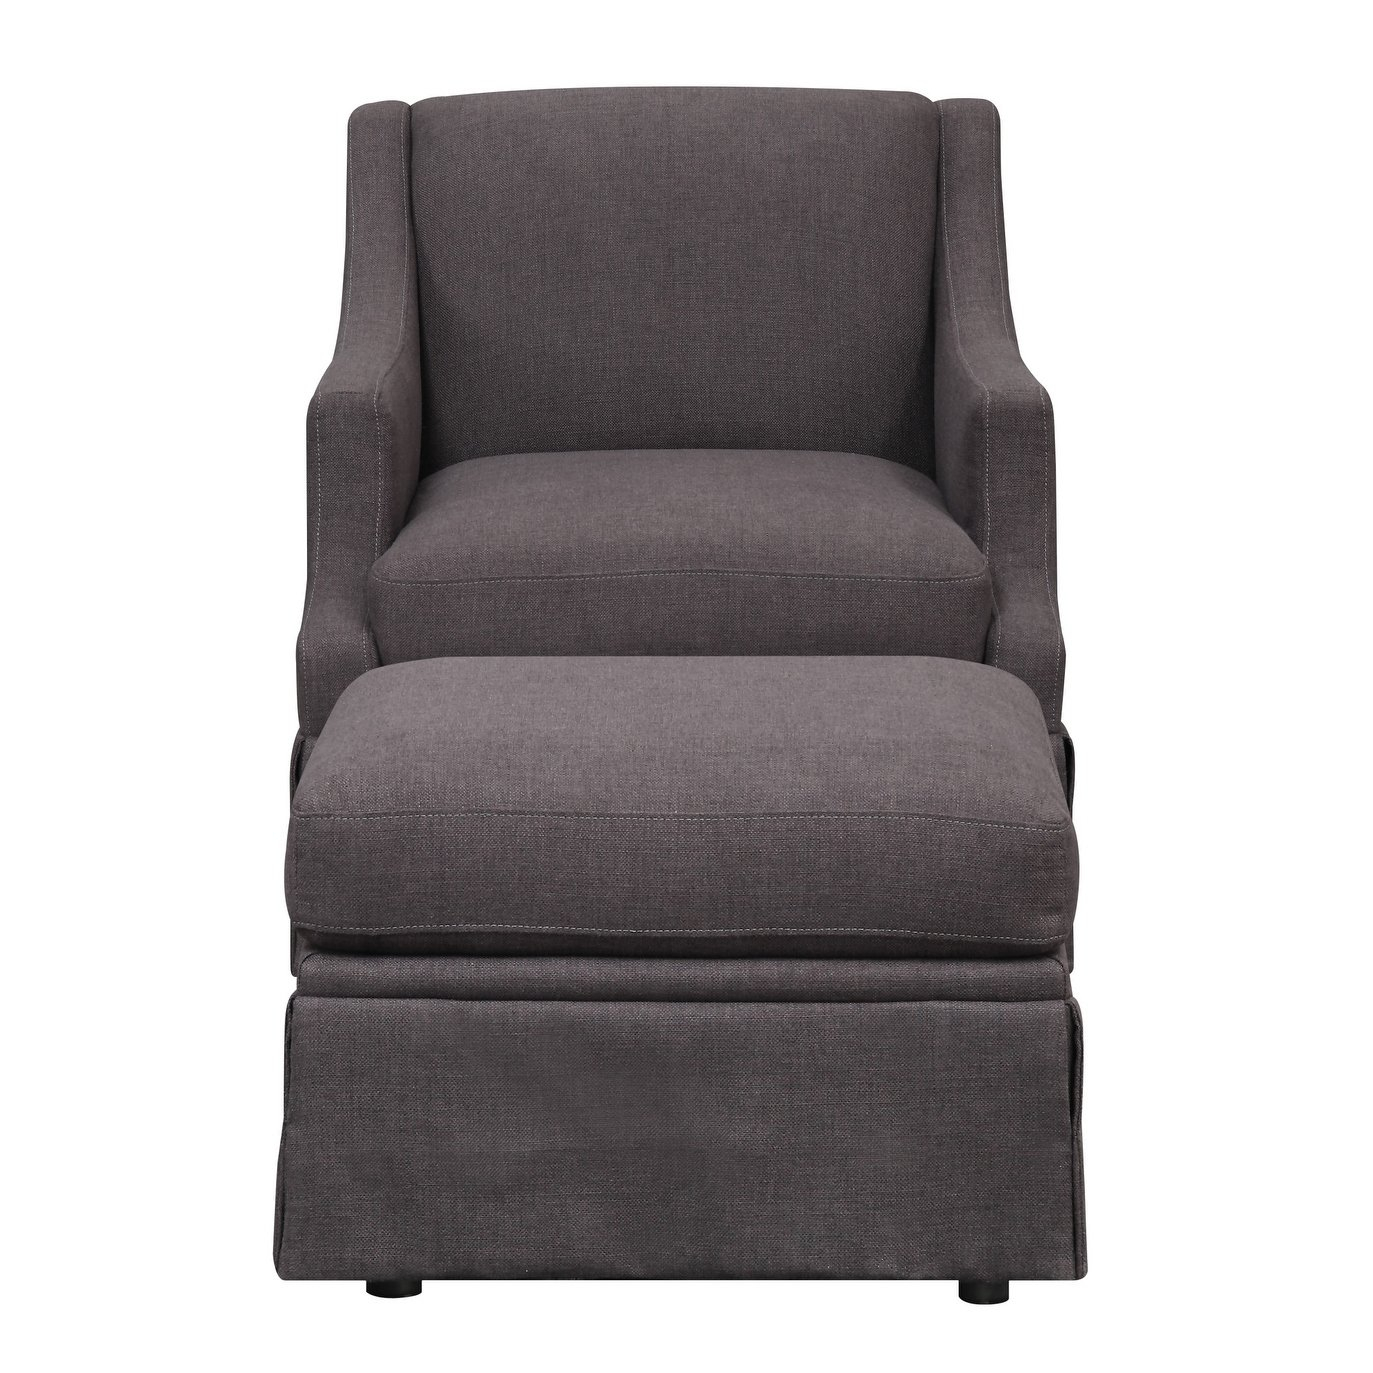 Shop Emerald Home Mckinley Charcoal Swivel Slip Chair And Ottoman Throughout Charcoal Swivel Chairs (View 19 of 25)